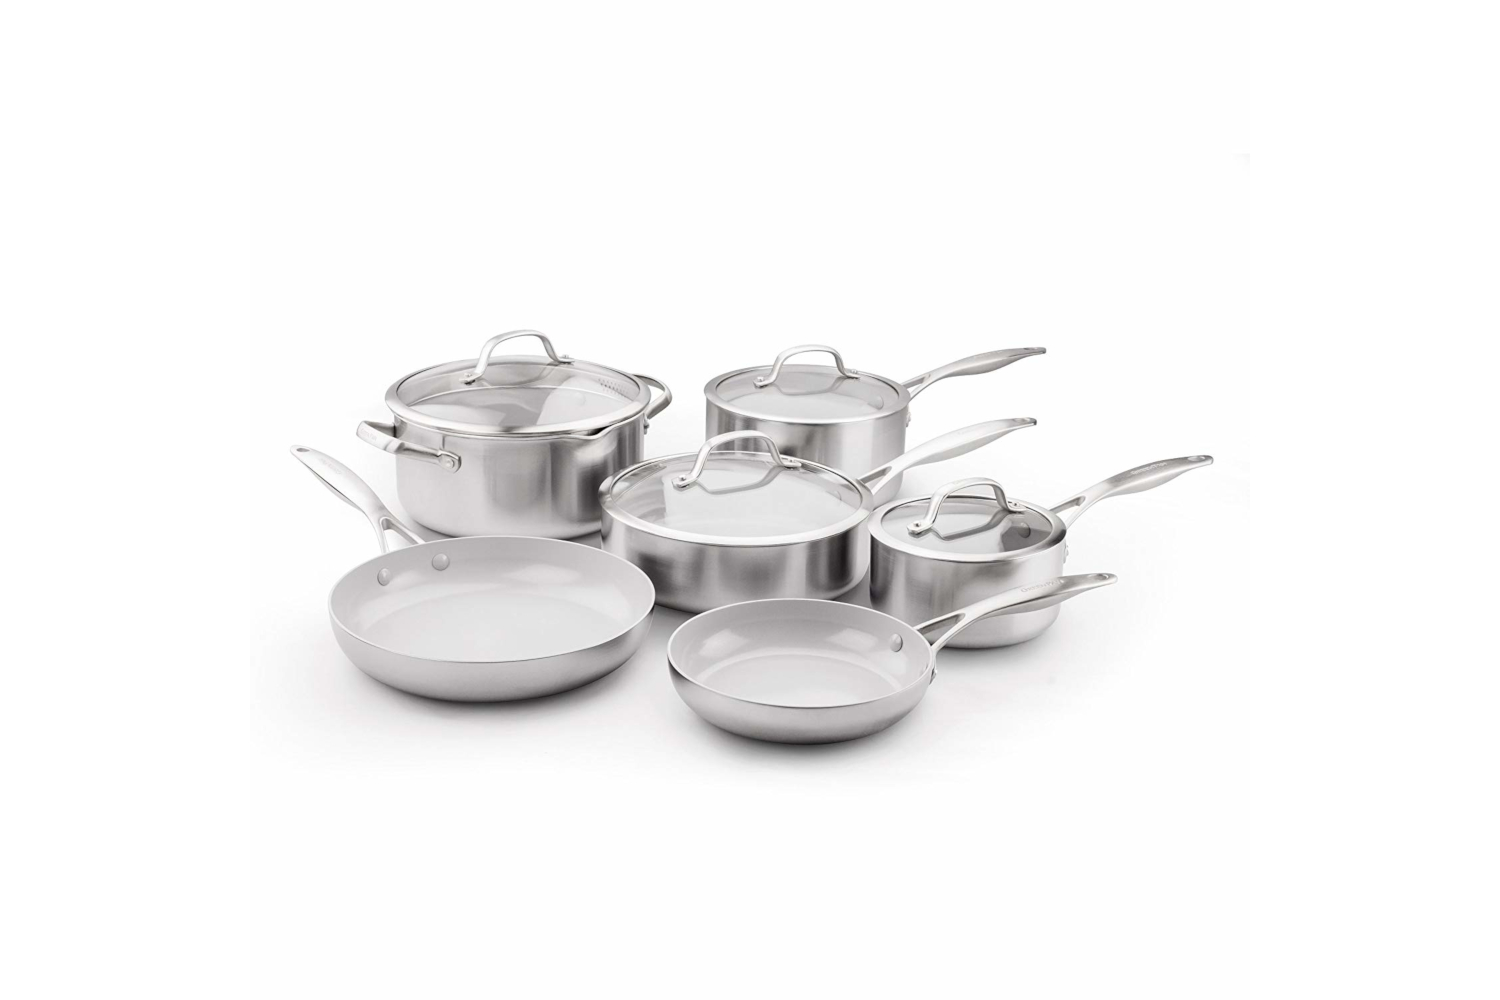 Greenpan Venice Pro Stainless Steel 10 Piece Ceramic Nonstick Cookware Set